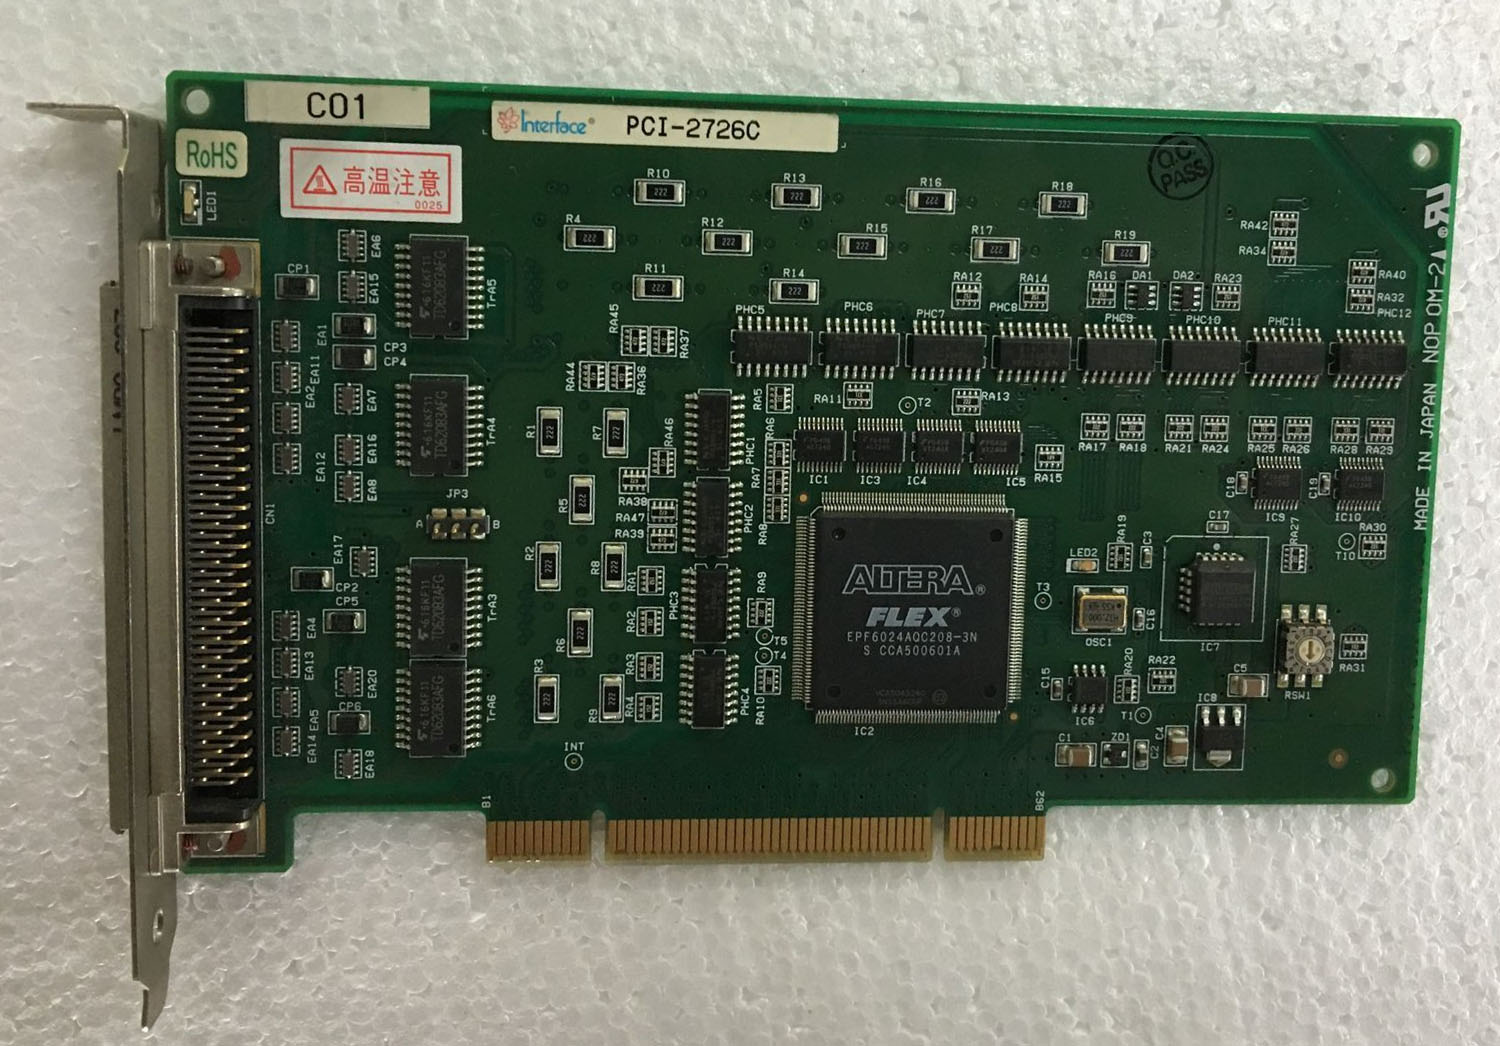 interface PCI-2726CM